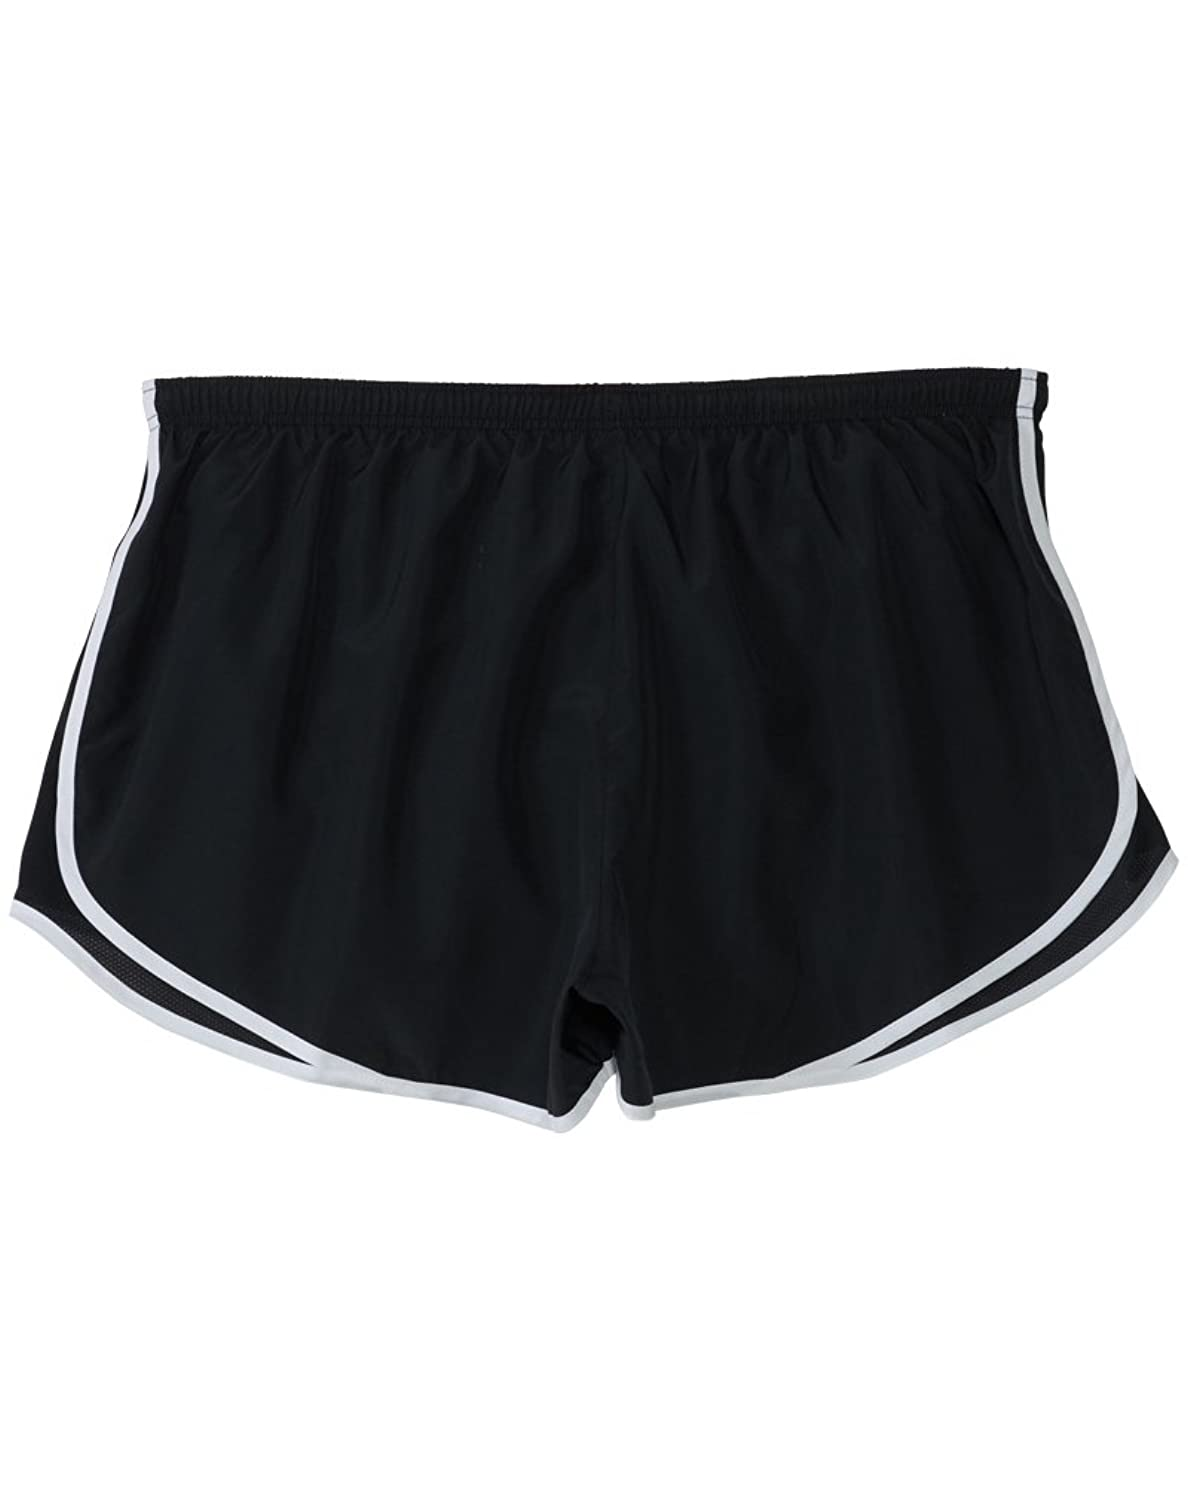 Men's basketball shorts should be designed for complete play ability-look for a pair that's soft, breathable and relaxed-fitting, helping you move quickly and freely on the court. Classic mesh basketball shorts are ideal for practice or play.